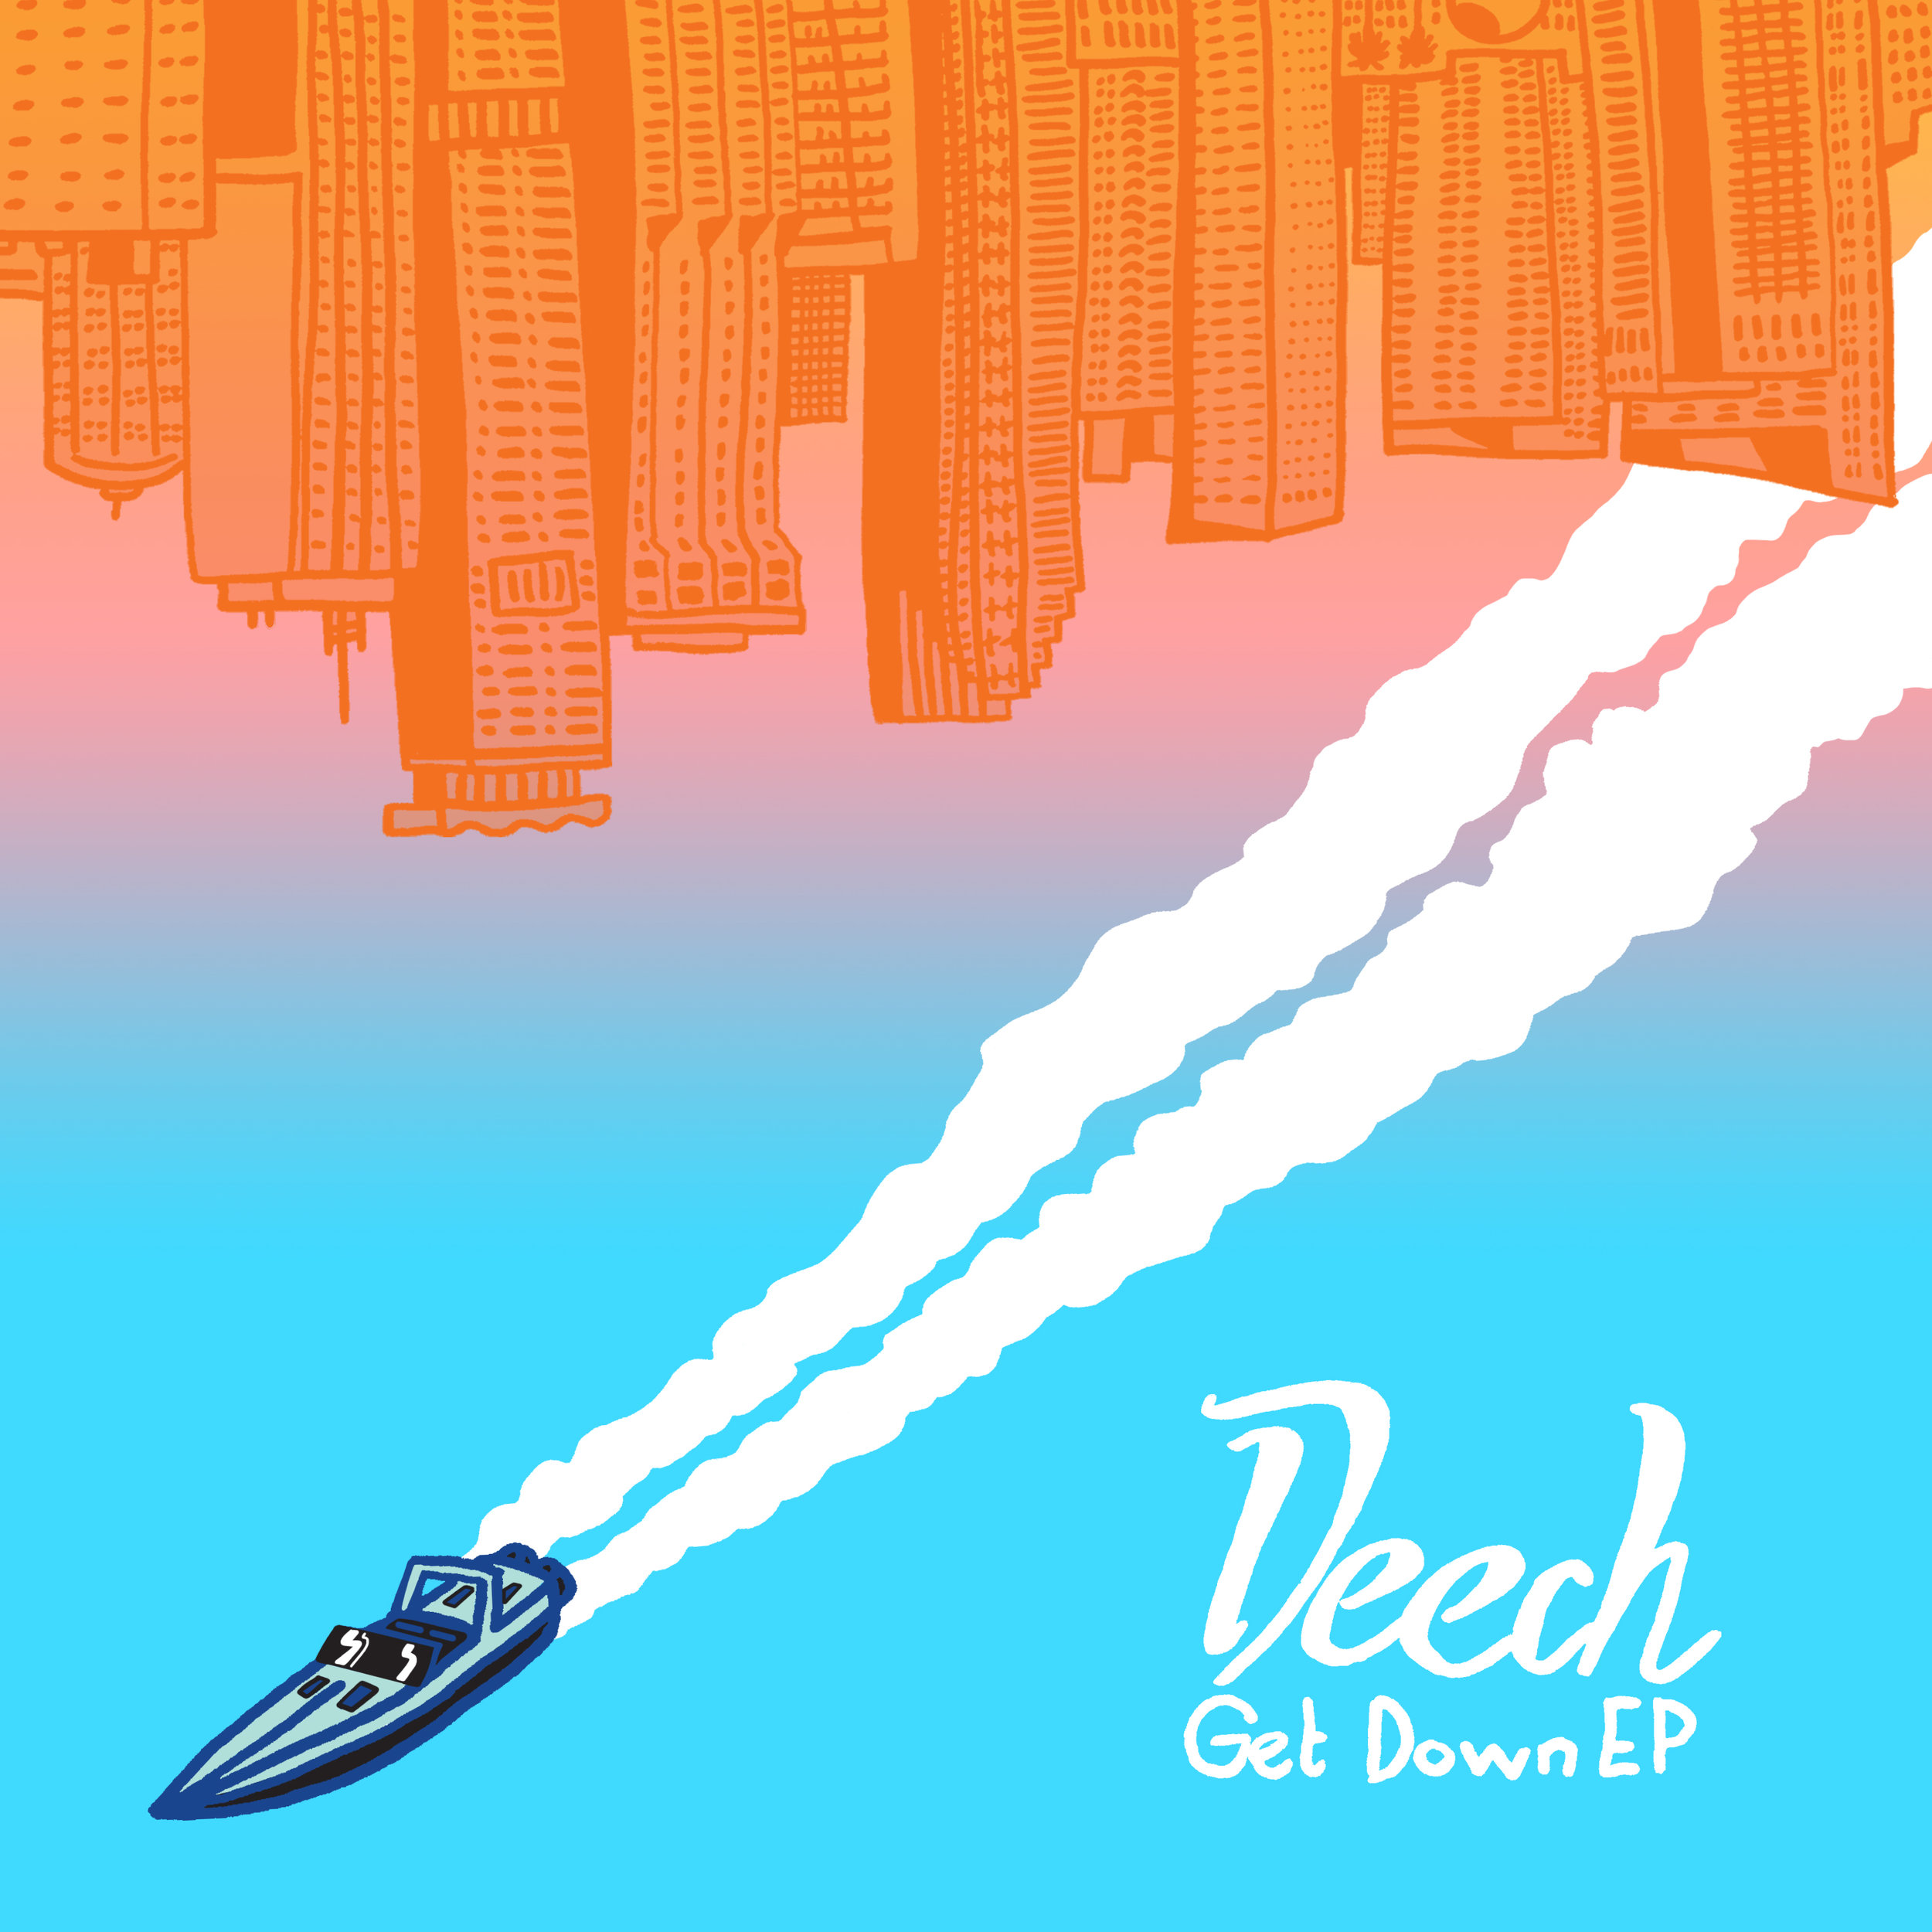 DEECH GET DOWN ARTWORK.jpg